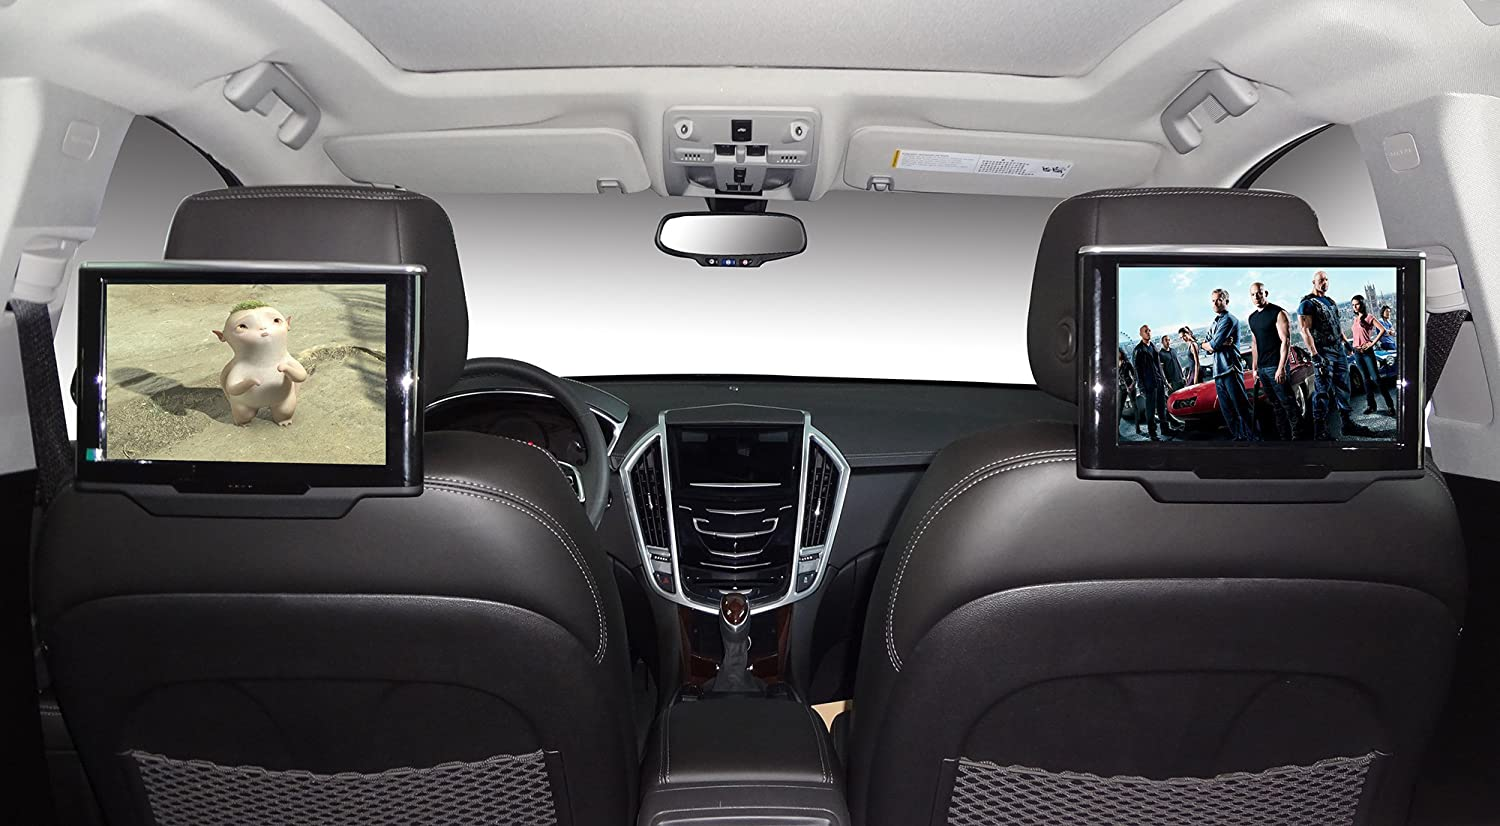 Newest high tech 10.1 inch android AV input output wifi 3g dongle 1280 800 resolution universal car av headrest monitor